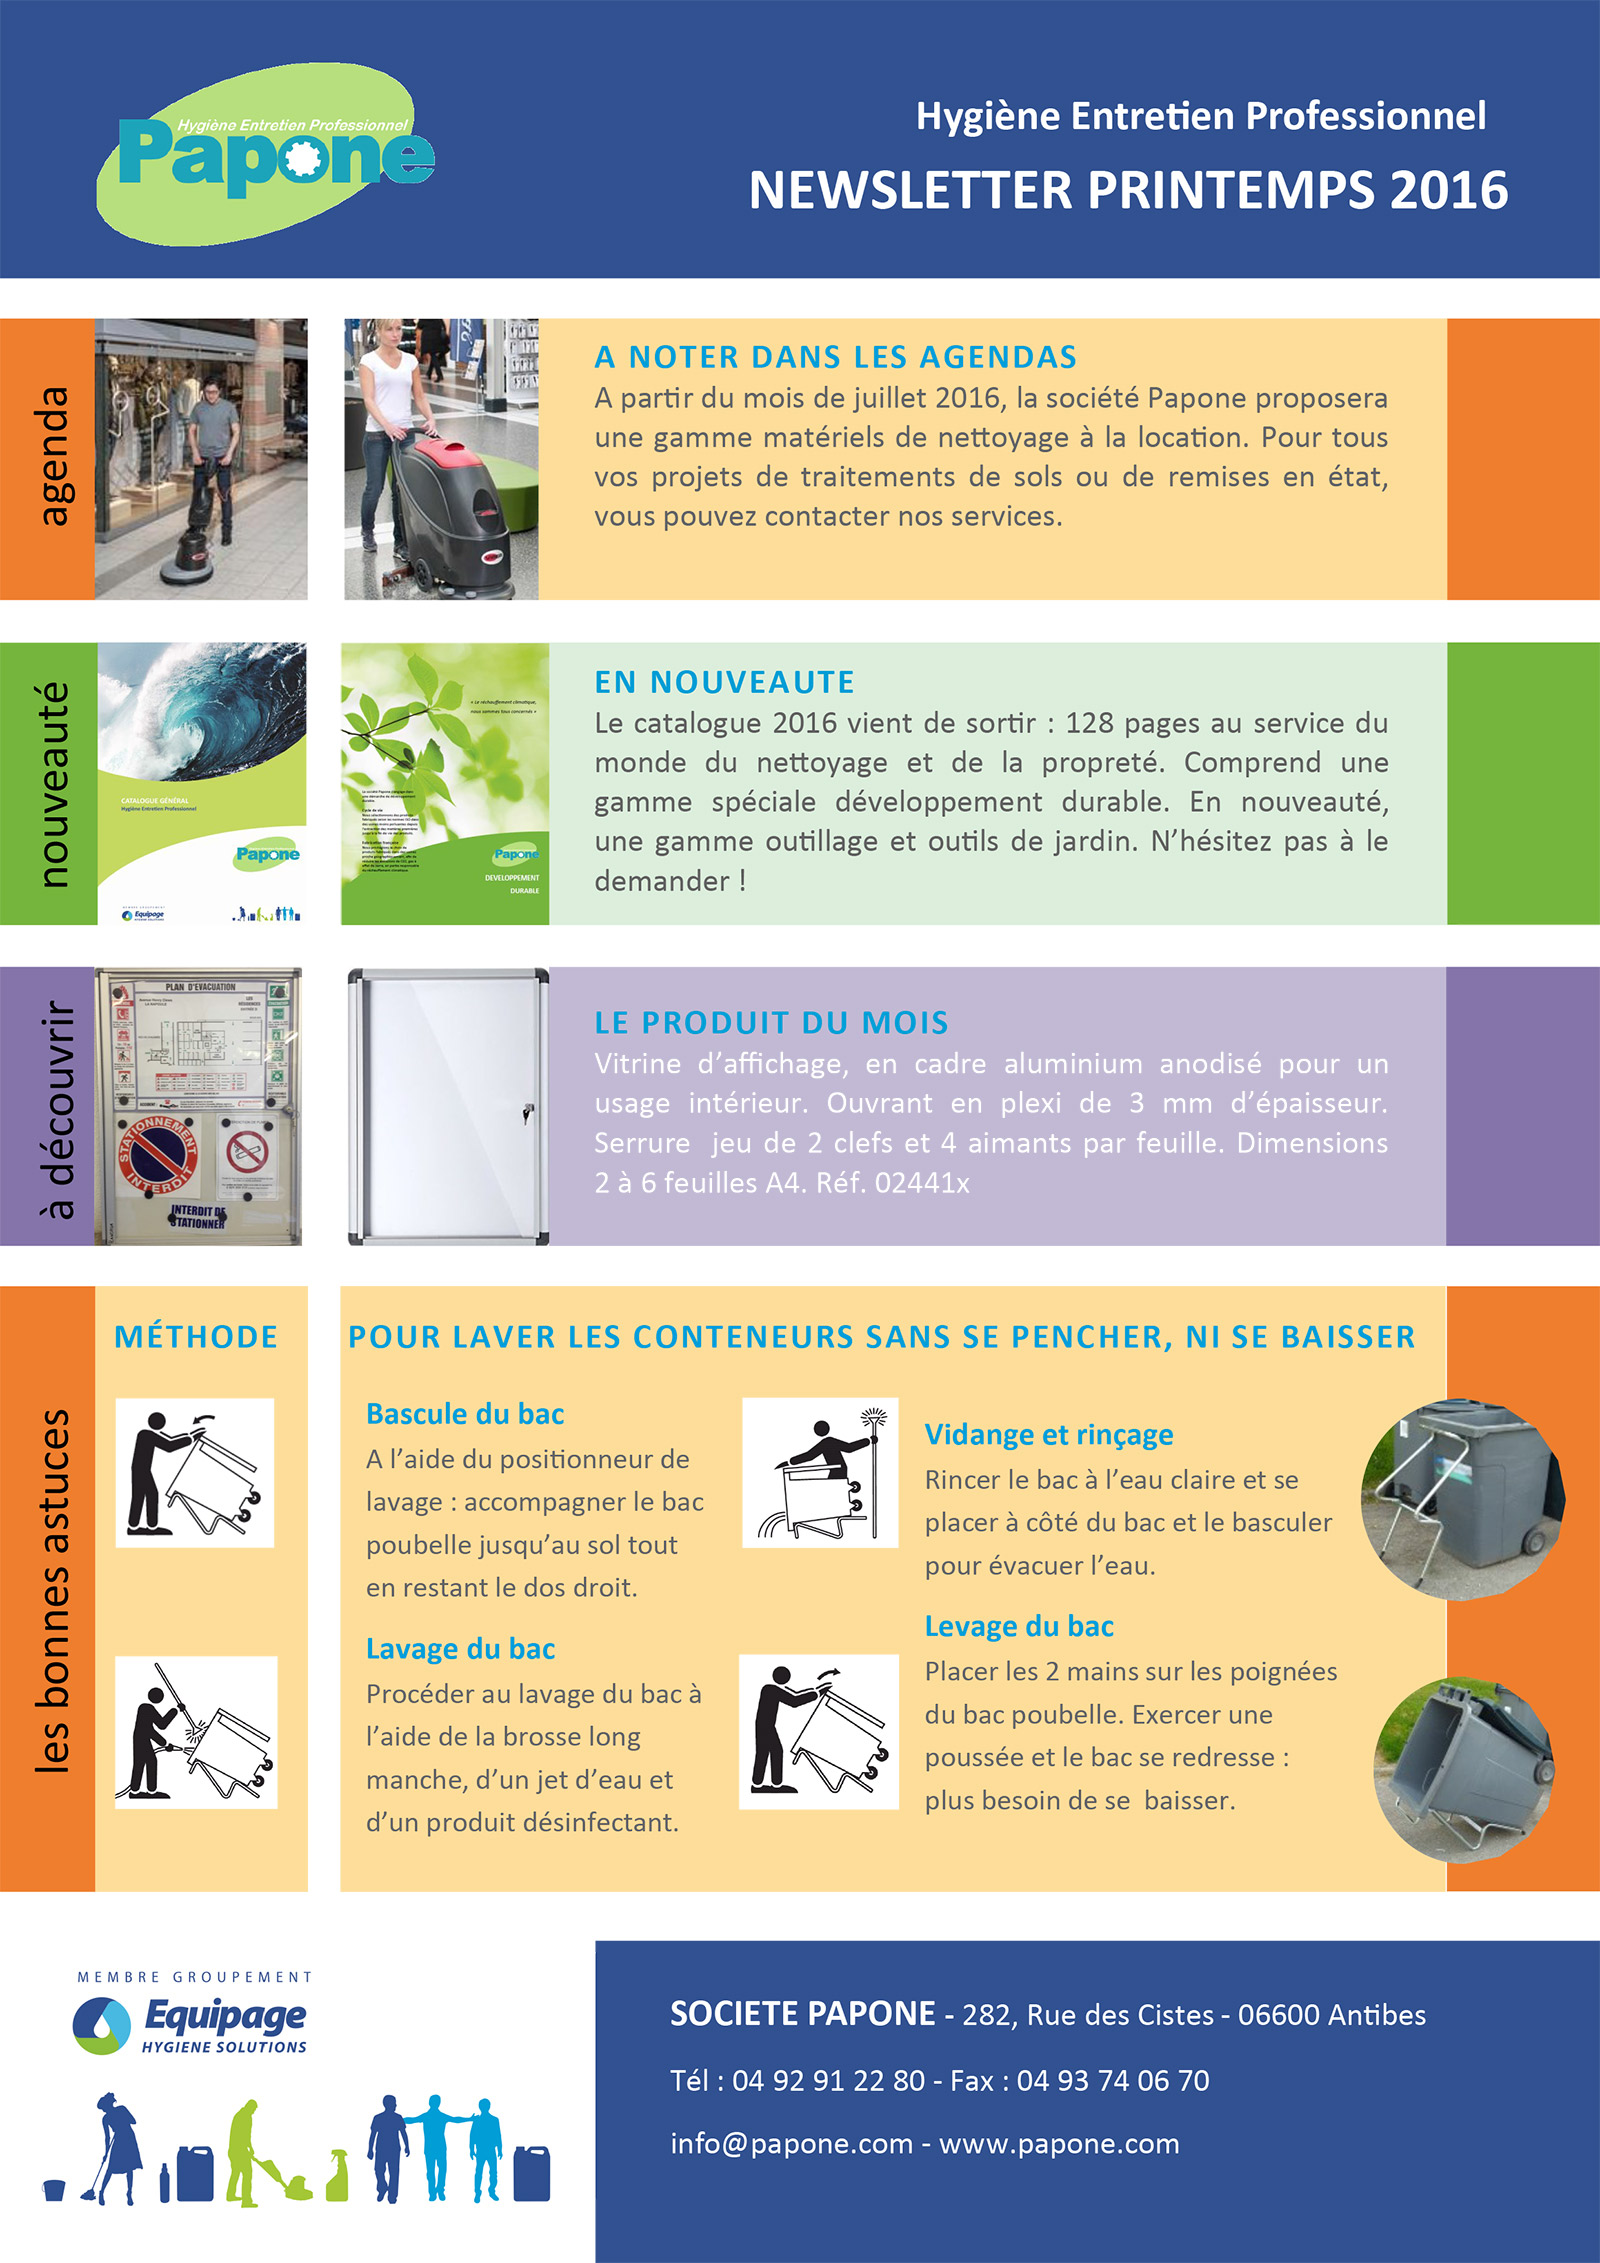 newsletter-printemps-2016